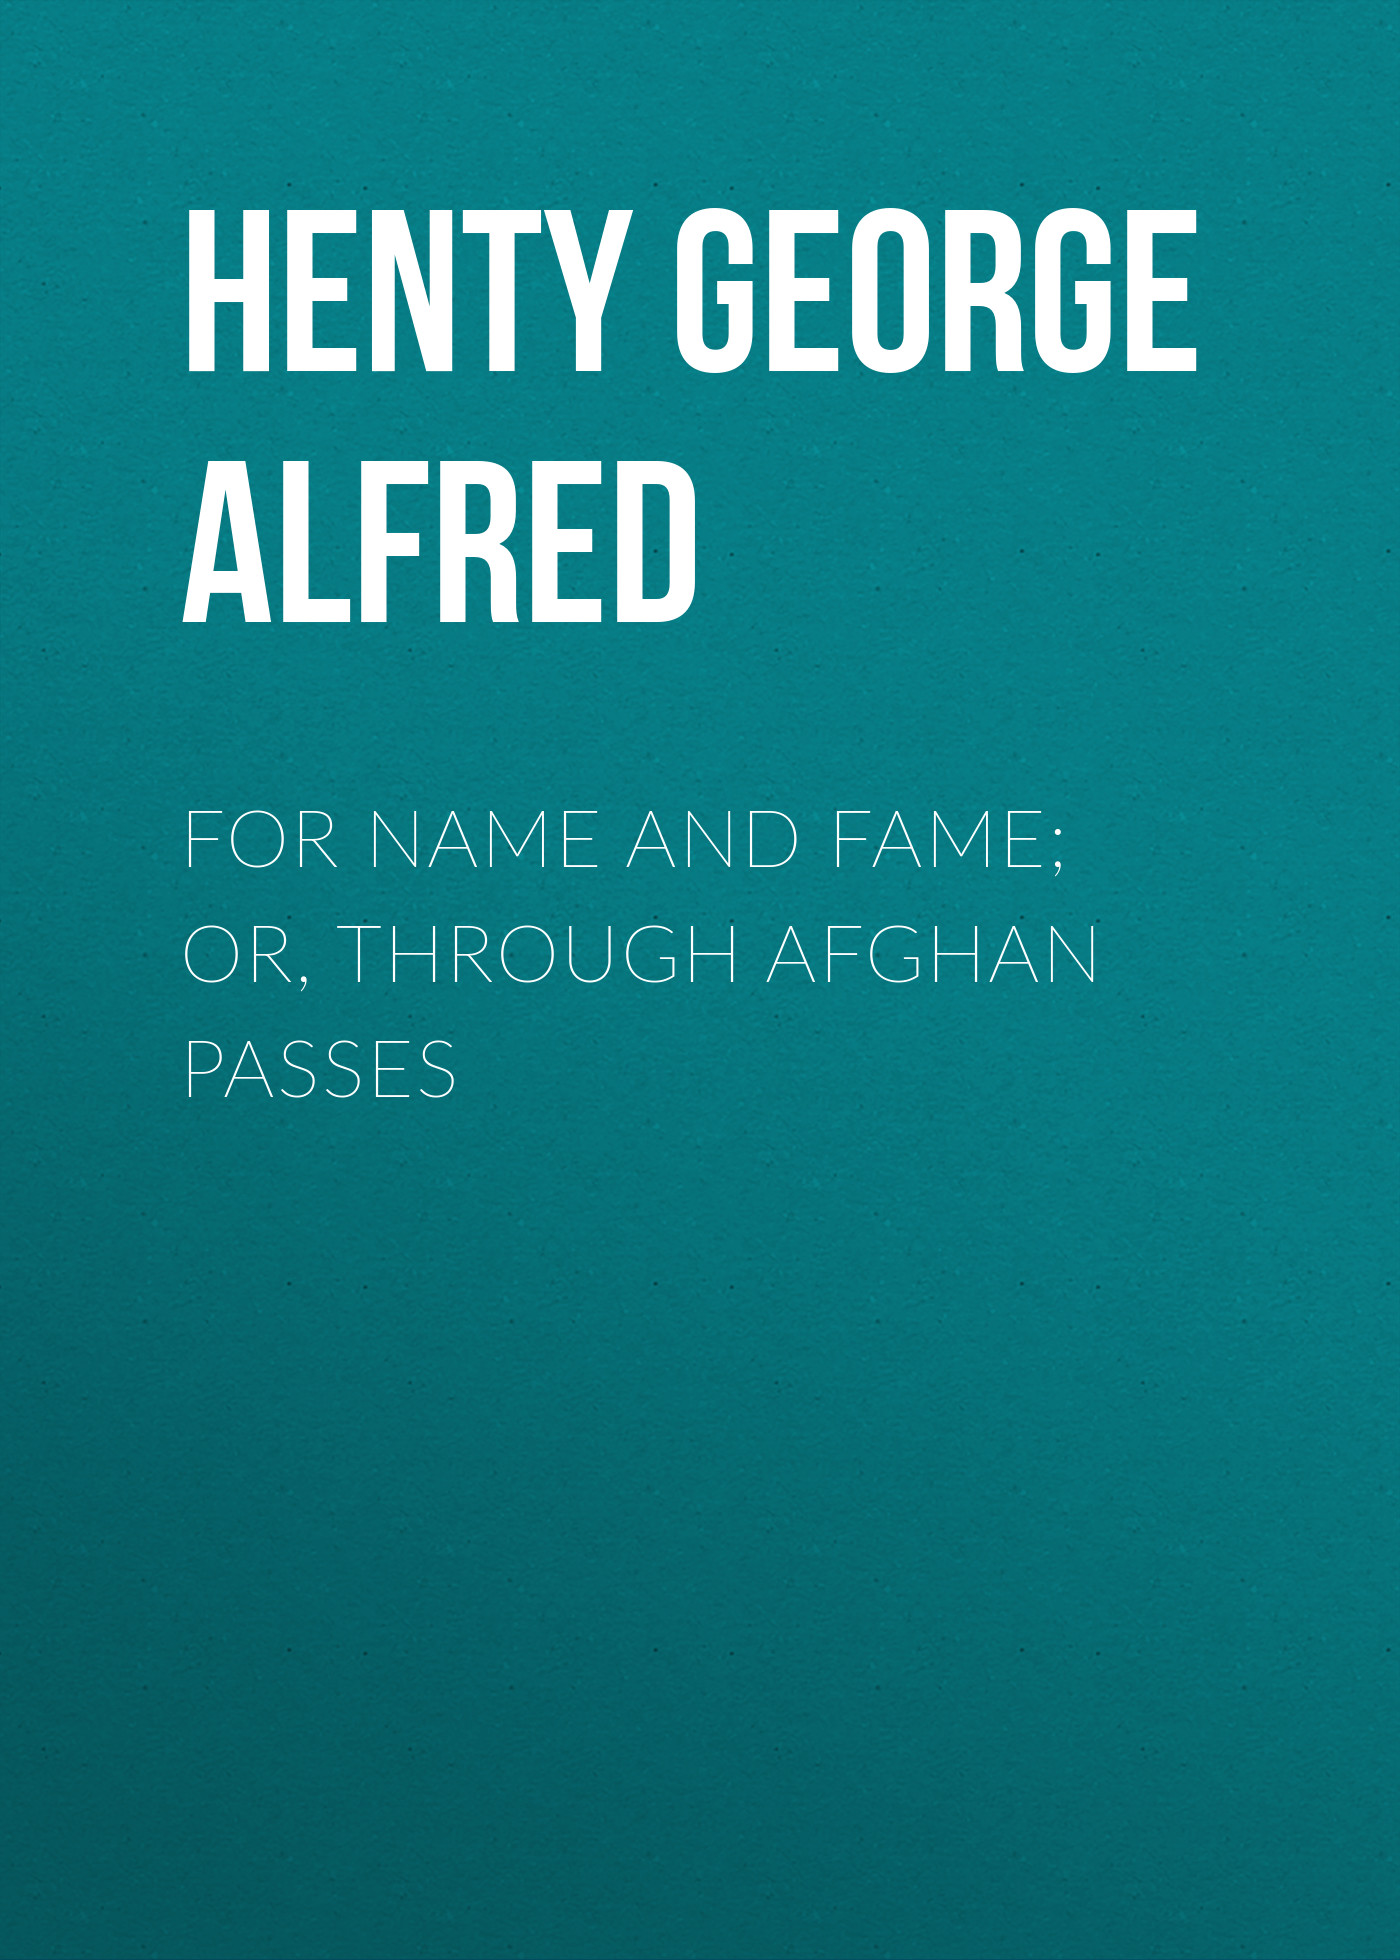 Henty George Alfred For Name and Fame; Or, Through Afghan Passes afghan